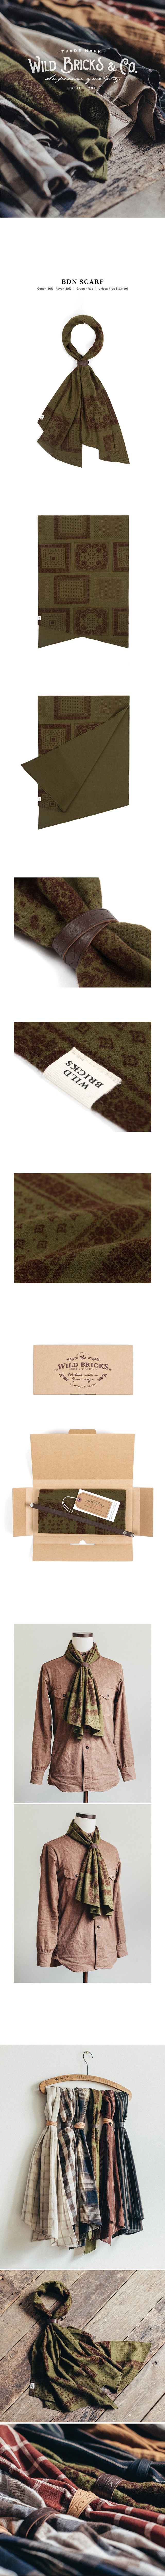 와일드 브릭스(WILD BRICKS) BDN SCARF (green)